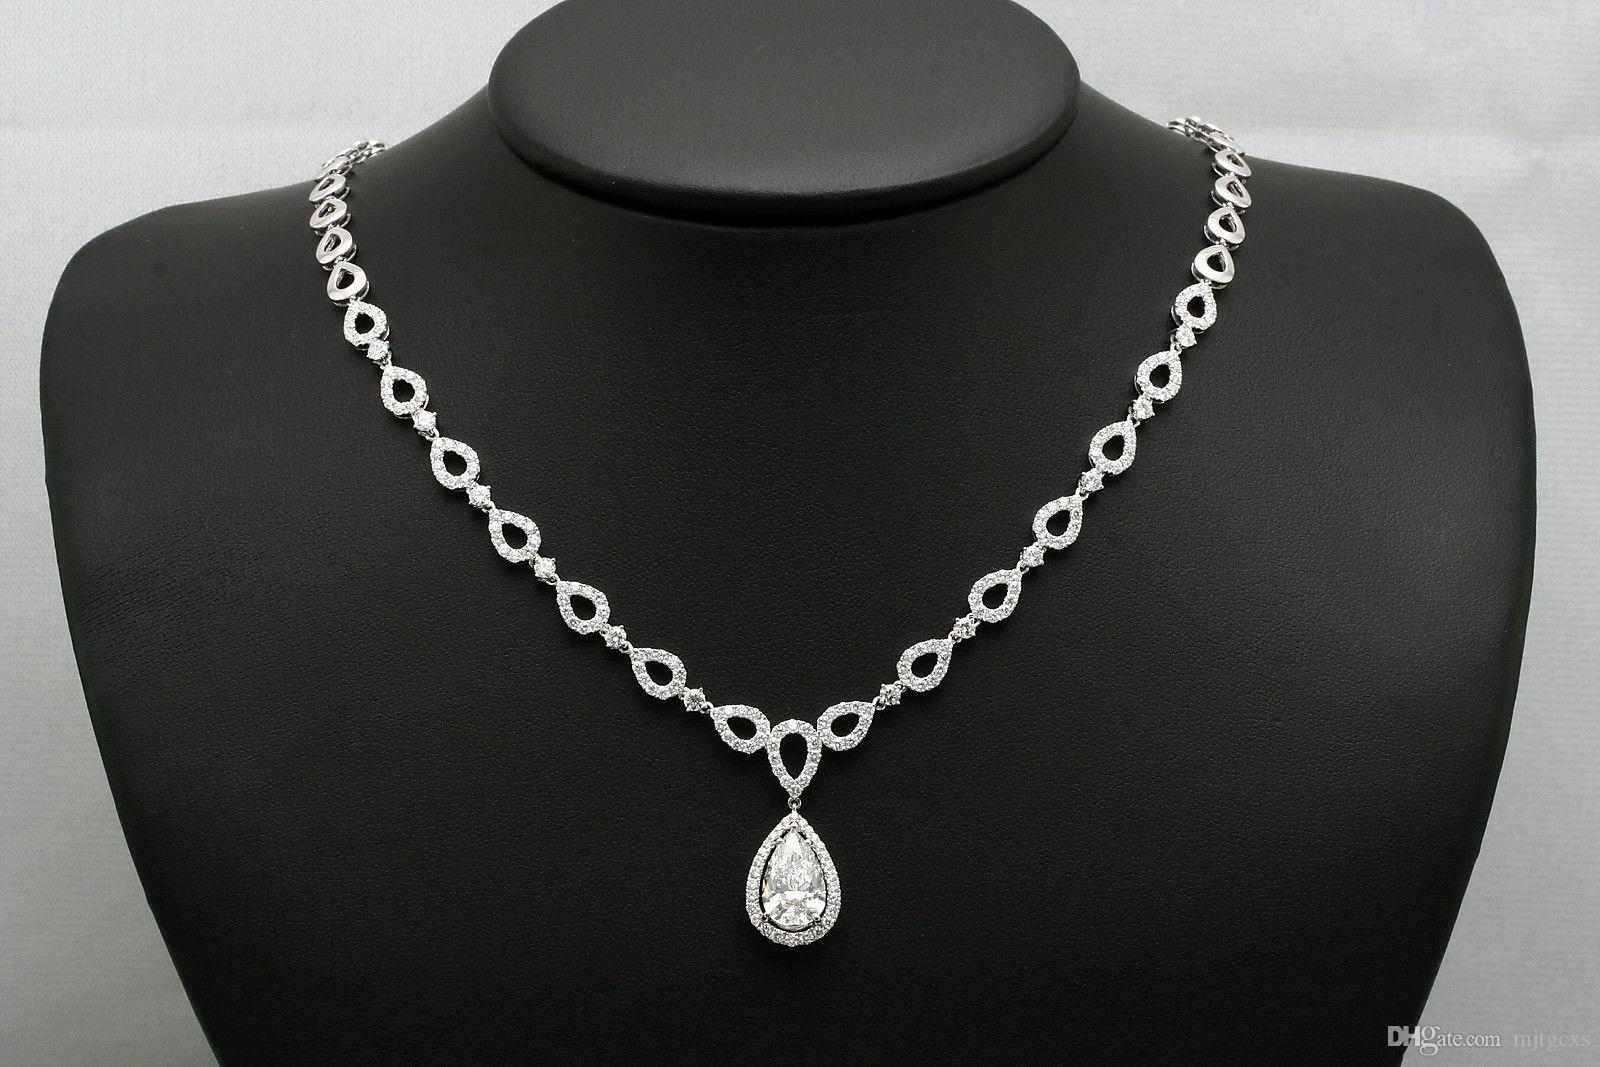 pendant en zoom hover carat necklace pear gold white diamond kaystore zm kay to mv shaped